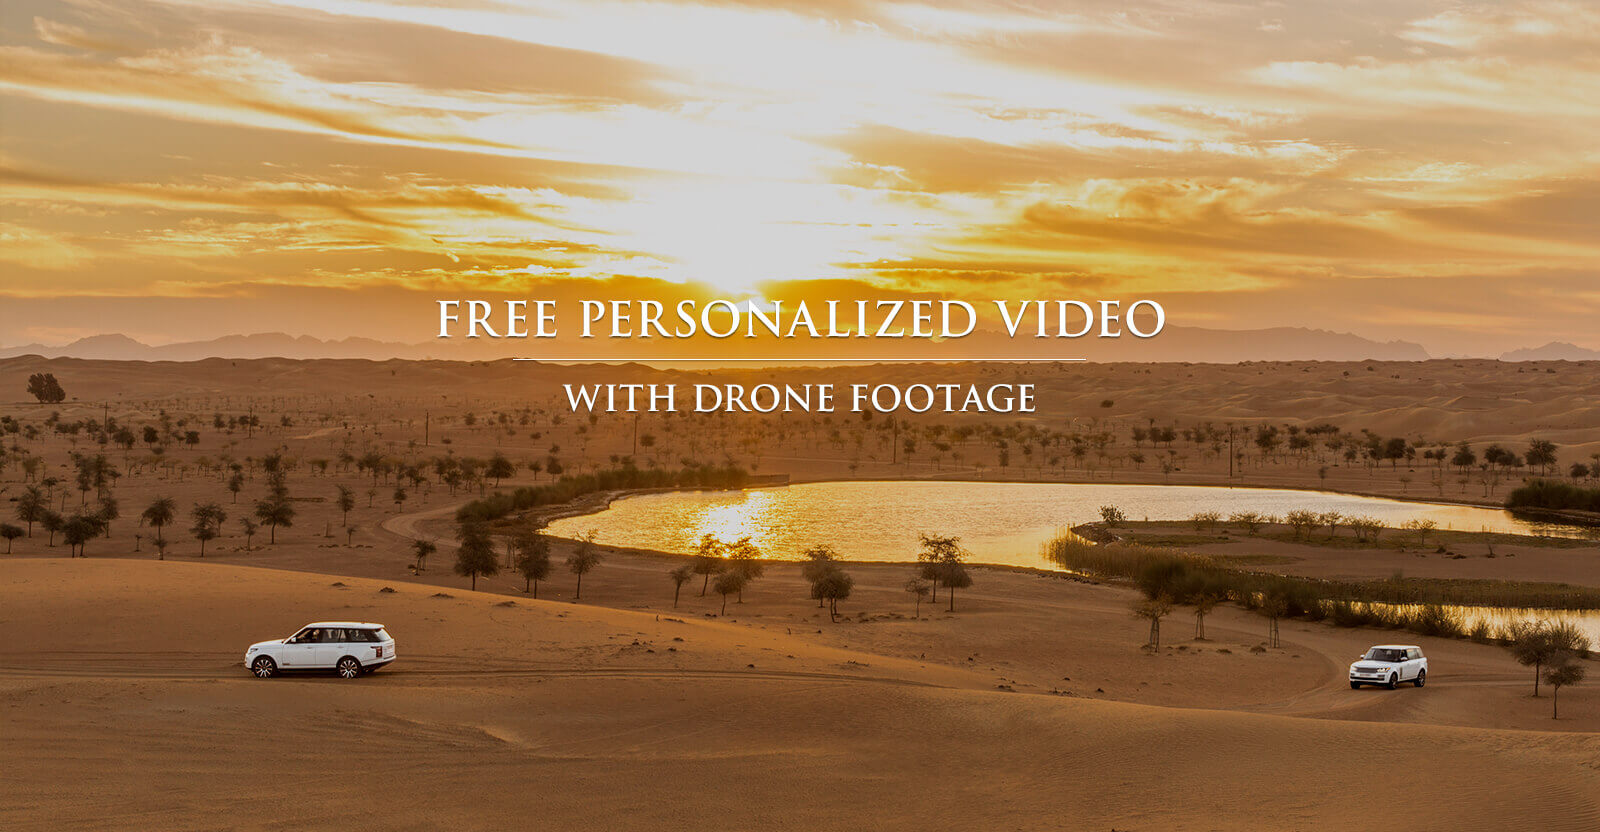 Free desert safari video for advance bookings - Platinum Heritage